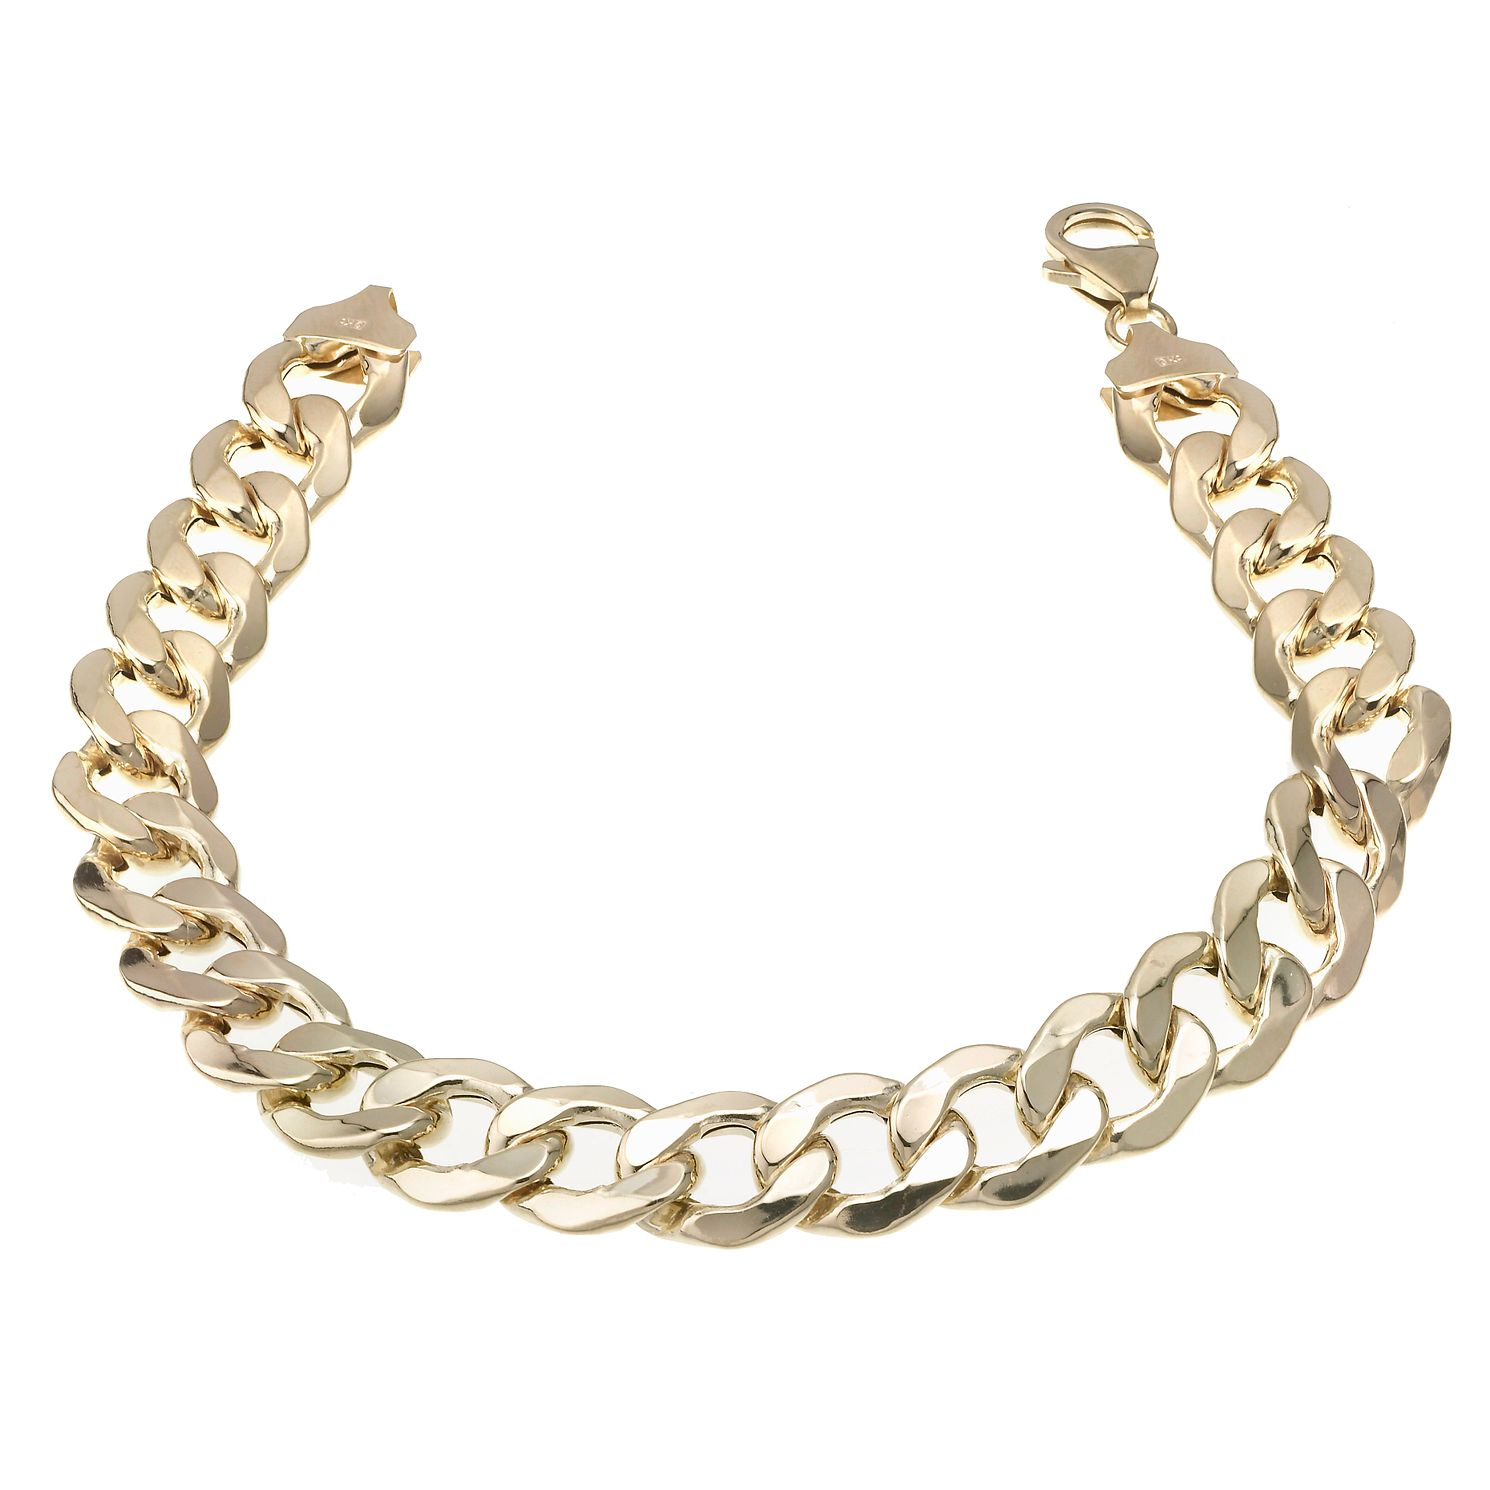 9ct Yellow Gold 8.5 Inch Curb Chain Bracelet - Product number 6342604